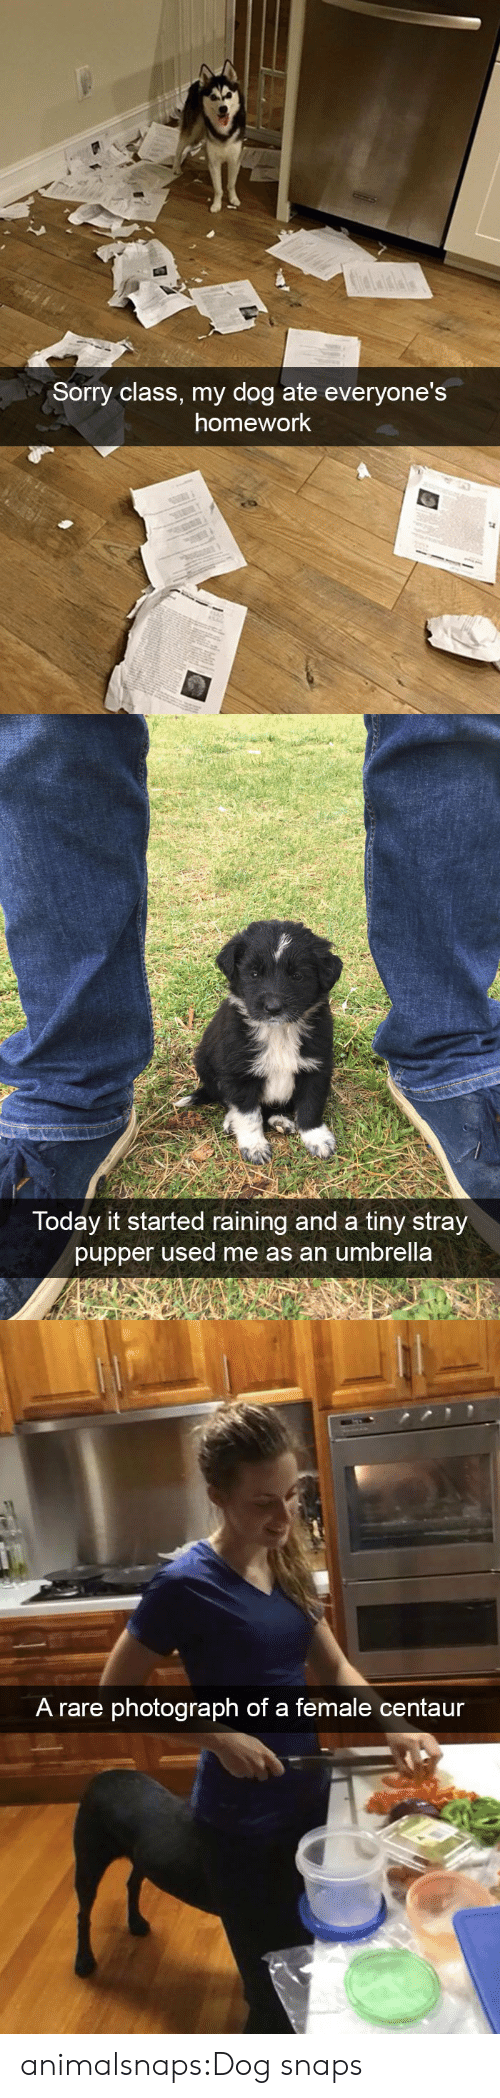 Sorry, Target, and Tumblr: Sorry class, my dog ate everyone's  homework   Today it started raining and a tiny stray  pupper used me as an umbrella   A rare photograph of a female centaur animalsnaps:Dog snaps